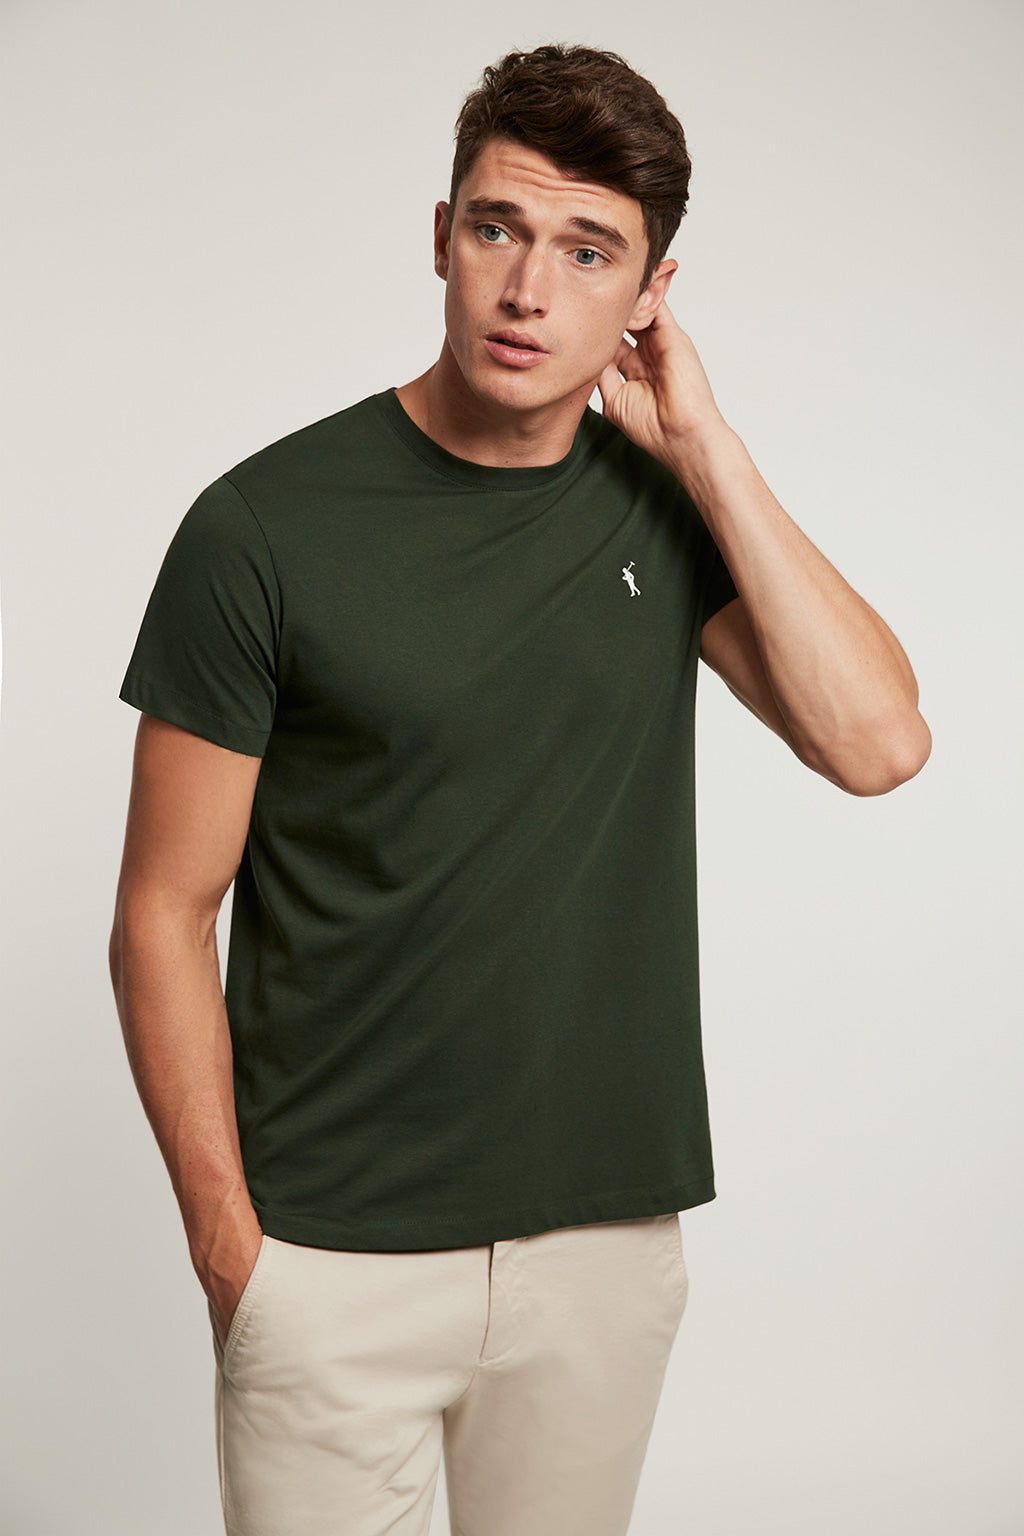 Forest green organic tee